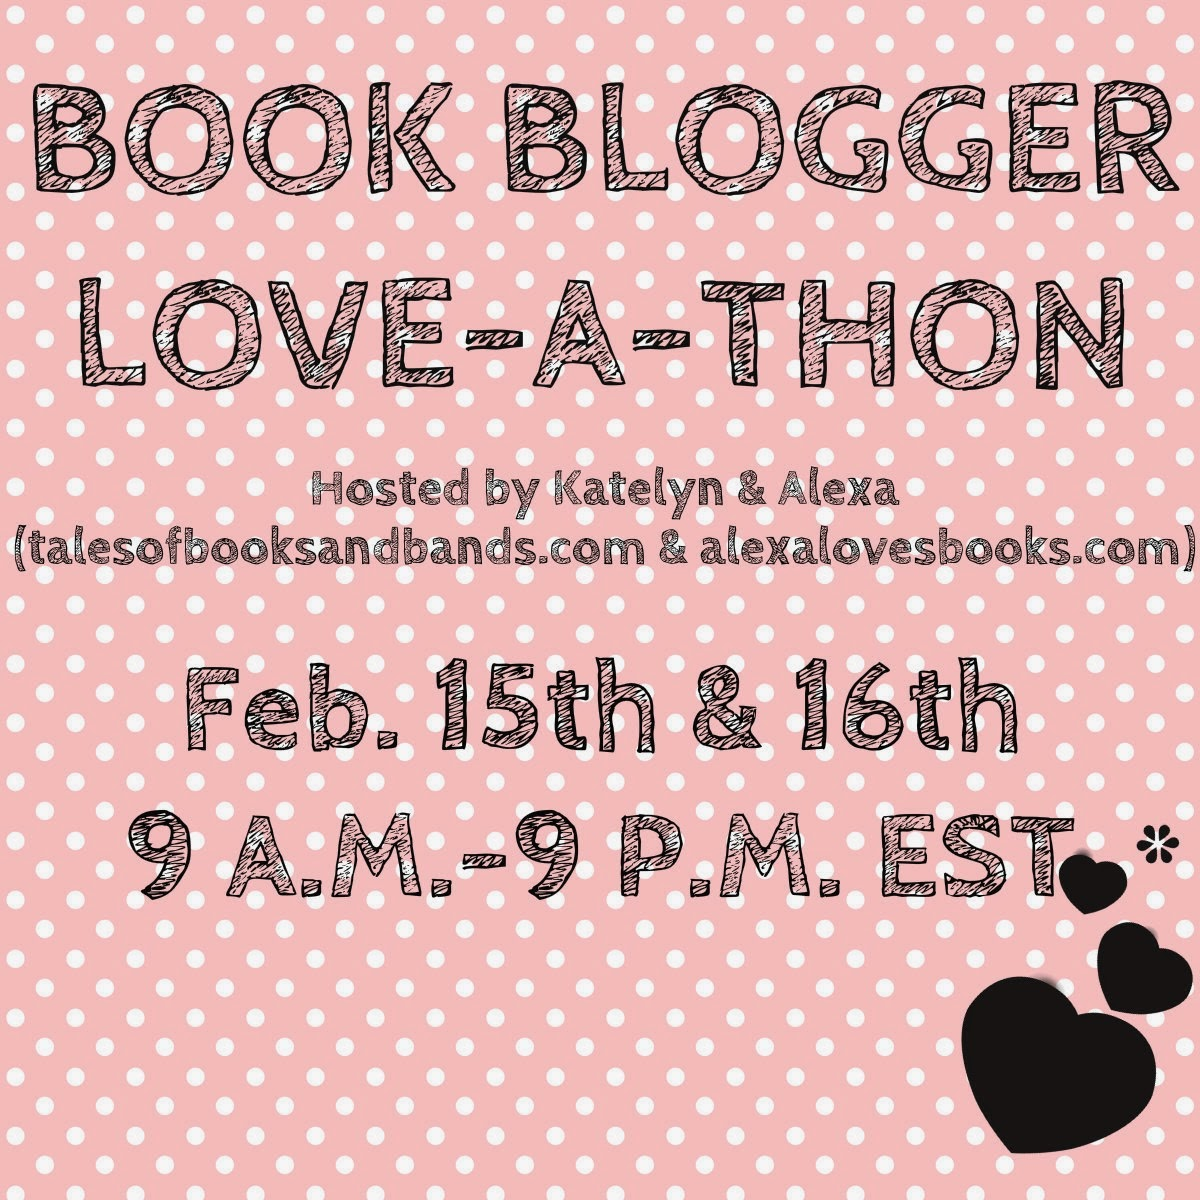 http://www.alexalovesbooks.com/2014/01/book-blogger-love-thon-2014.html